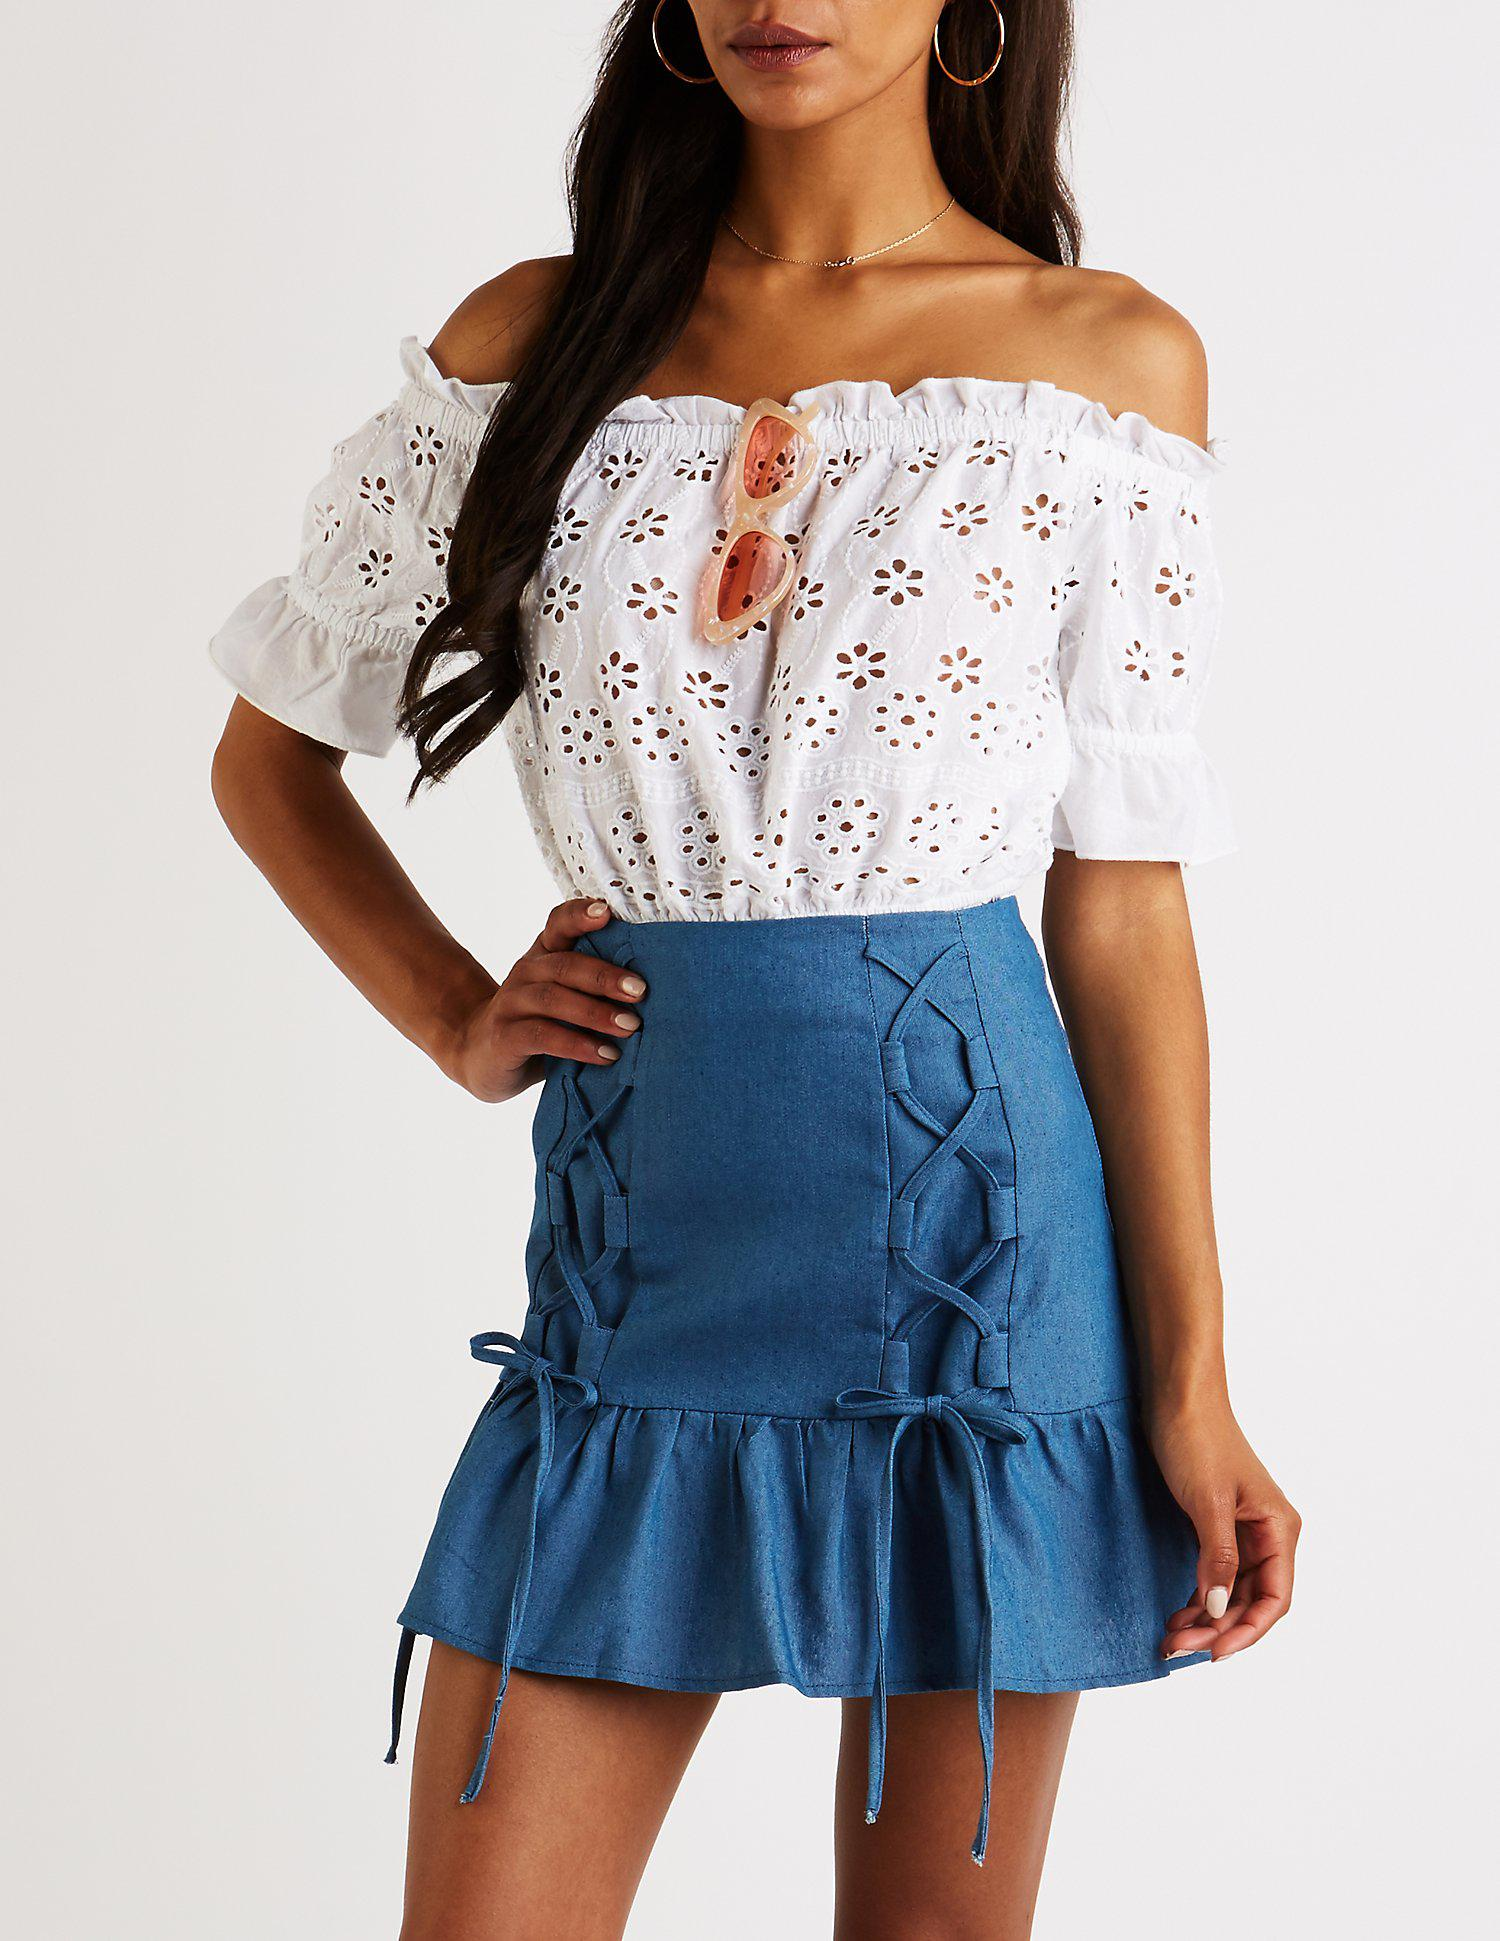 c22c4d0a93 Lyst - Charlotte Russe Chambray Lace Up Mini Skirt in Blue